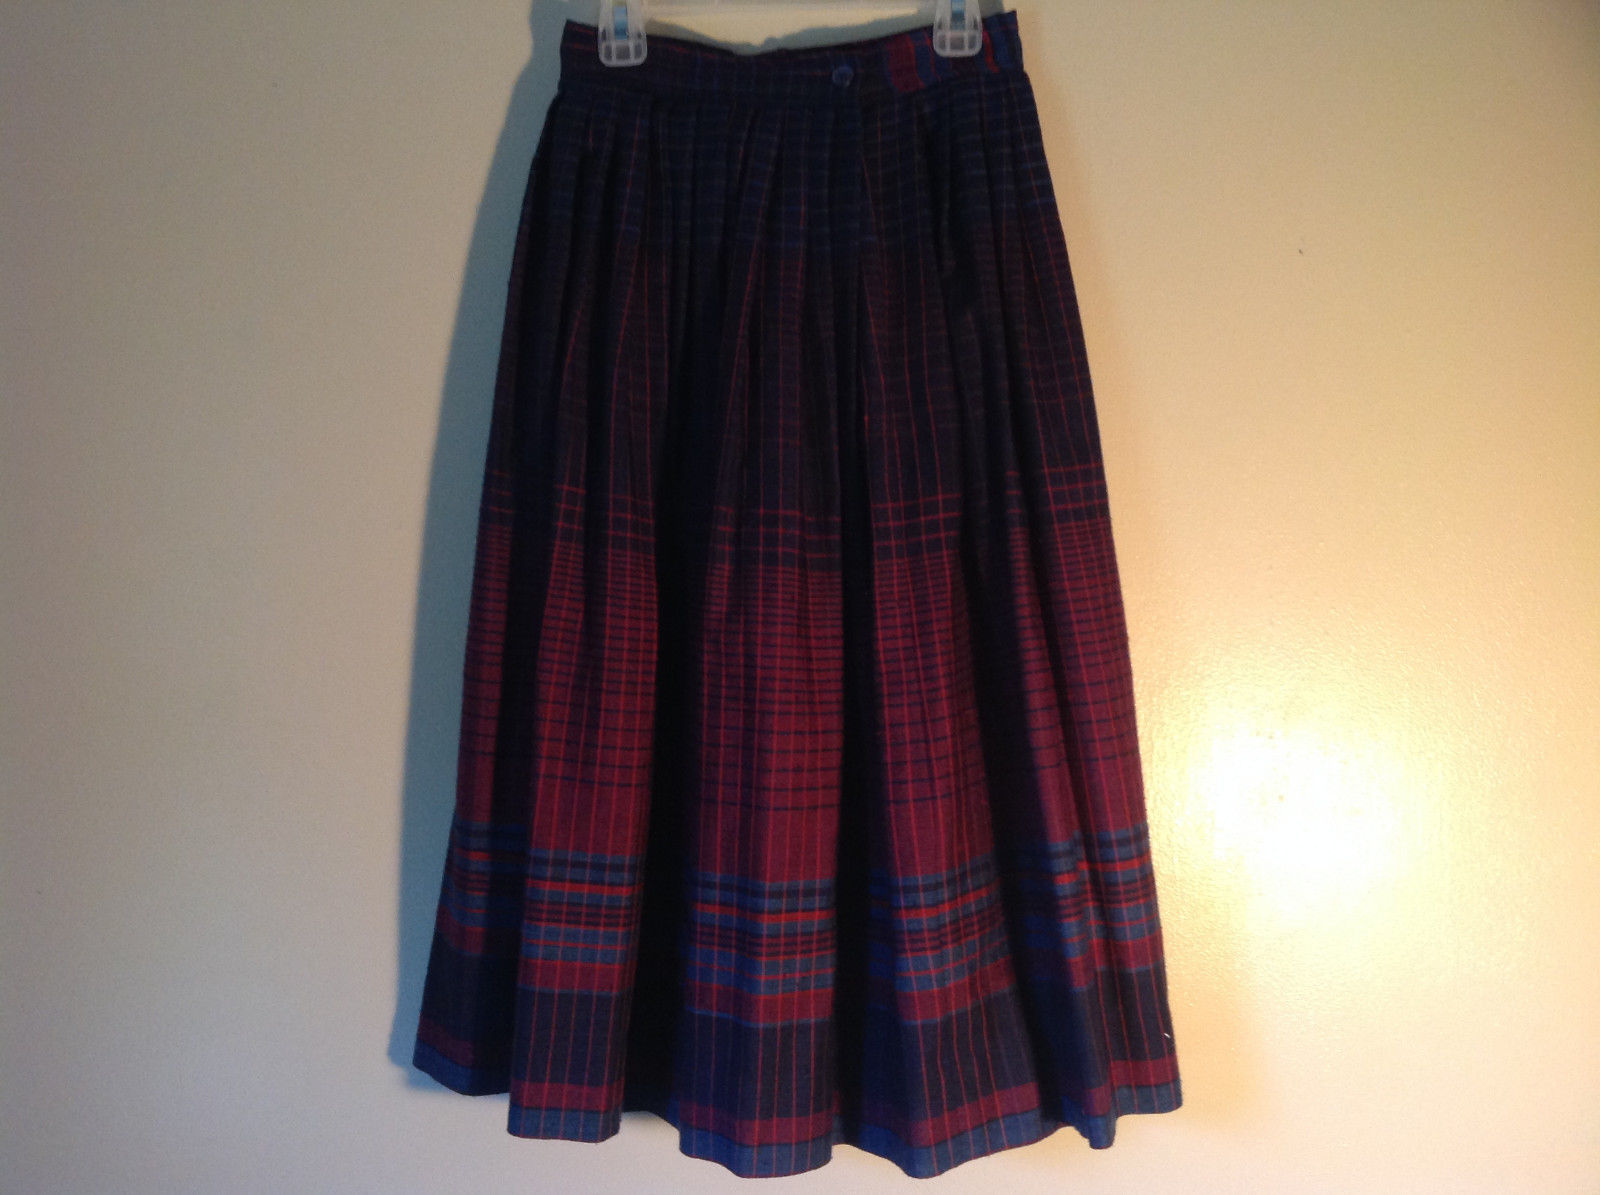 The Villager Plaid Navy Blue Teal and Red Full Skirt Size 4 Petite